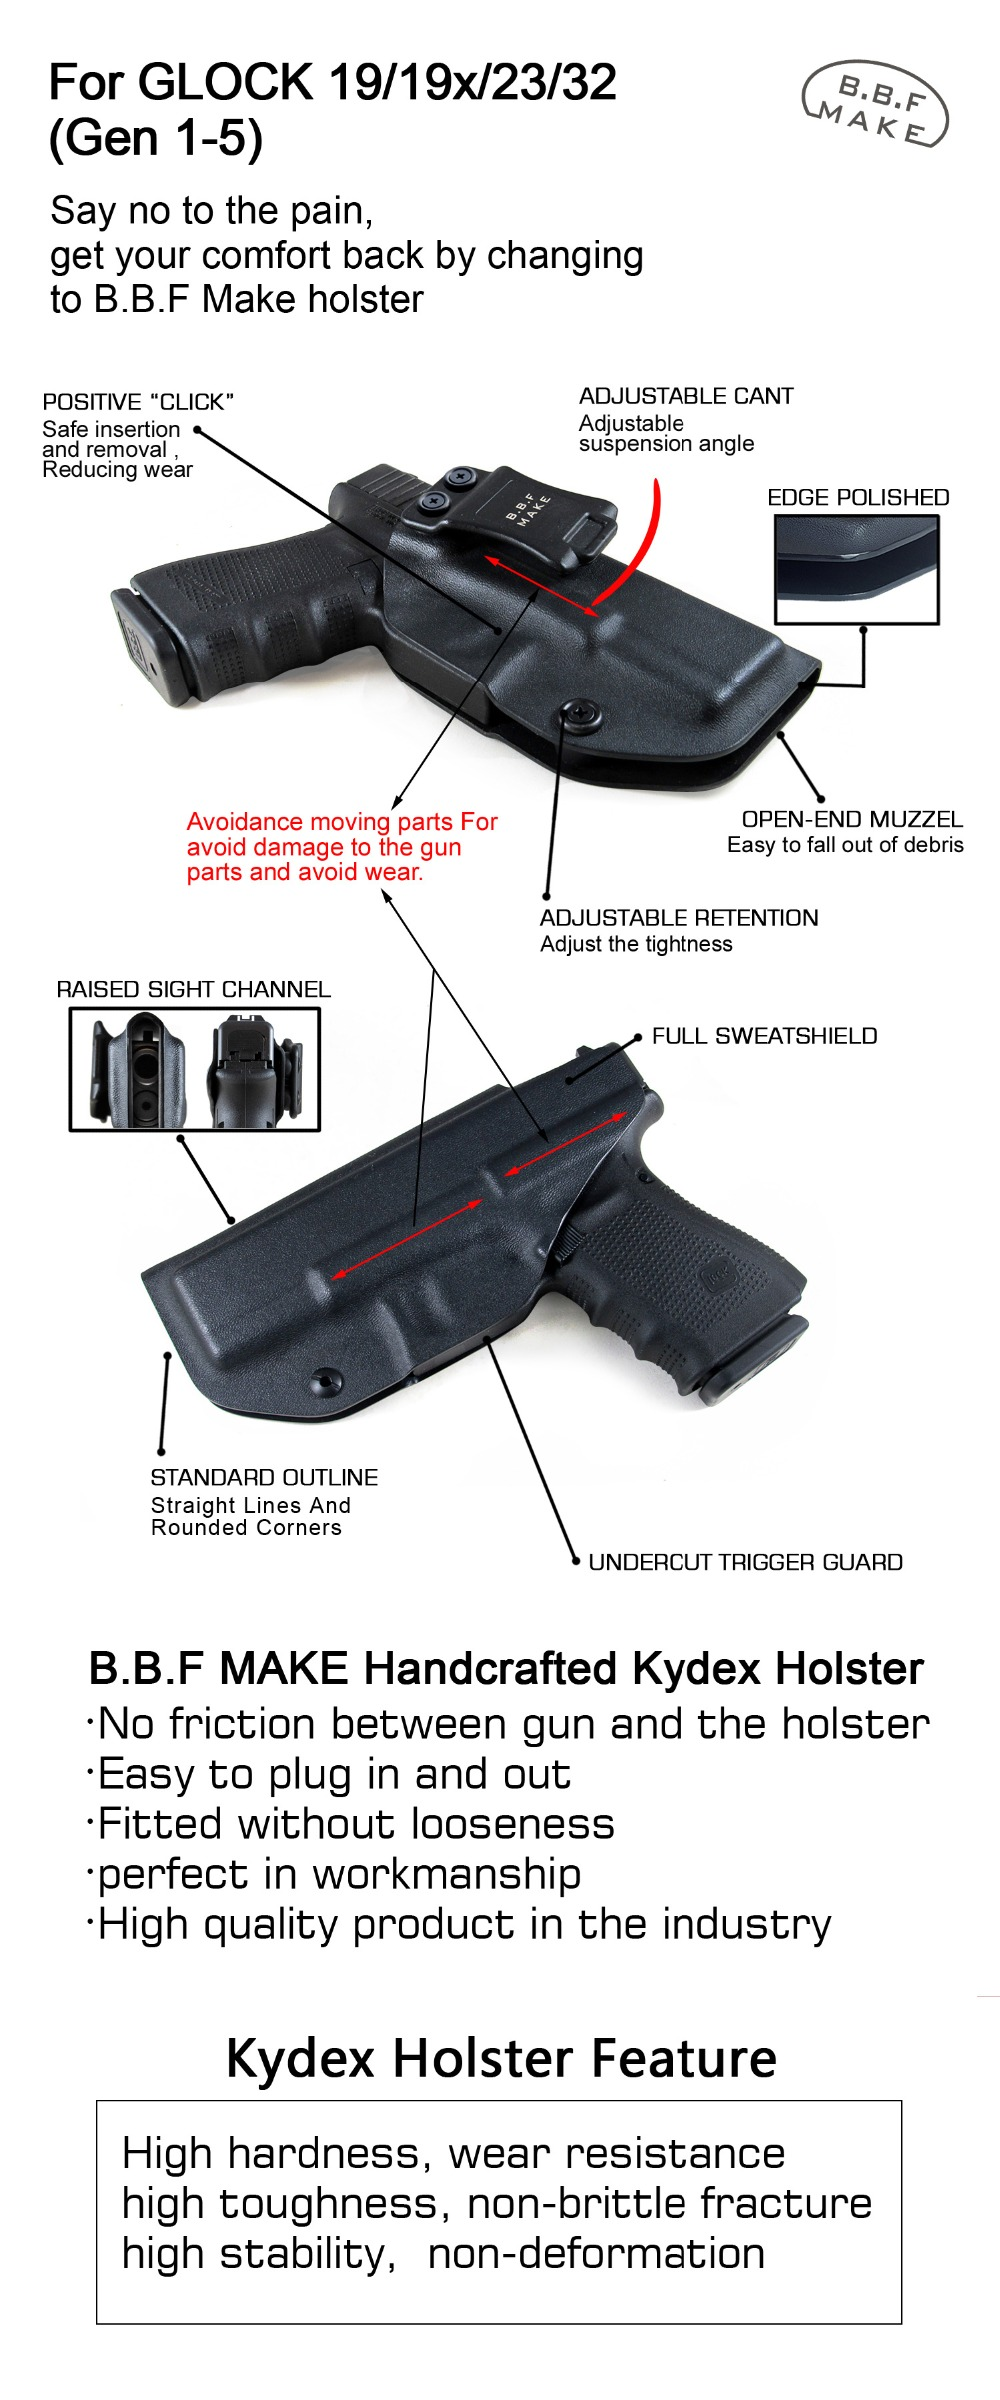 B B F Make IWB Carbon Fiber Woven KYDEX Gun Holster Fits: Glock 19 23 25 32  Cz p10c Inside Concealed Carry Pistol Case